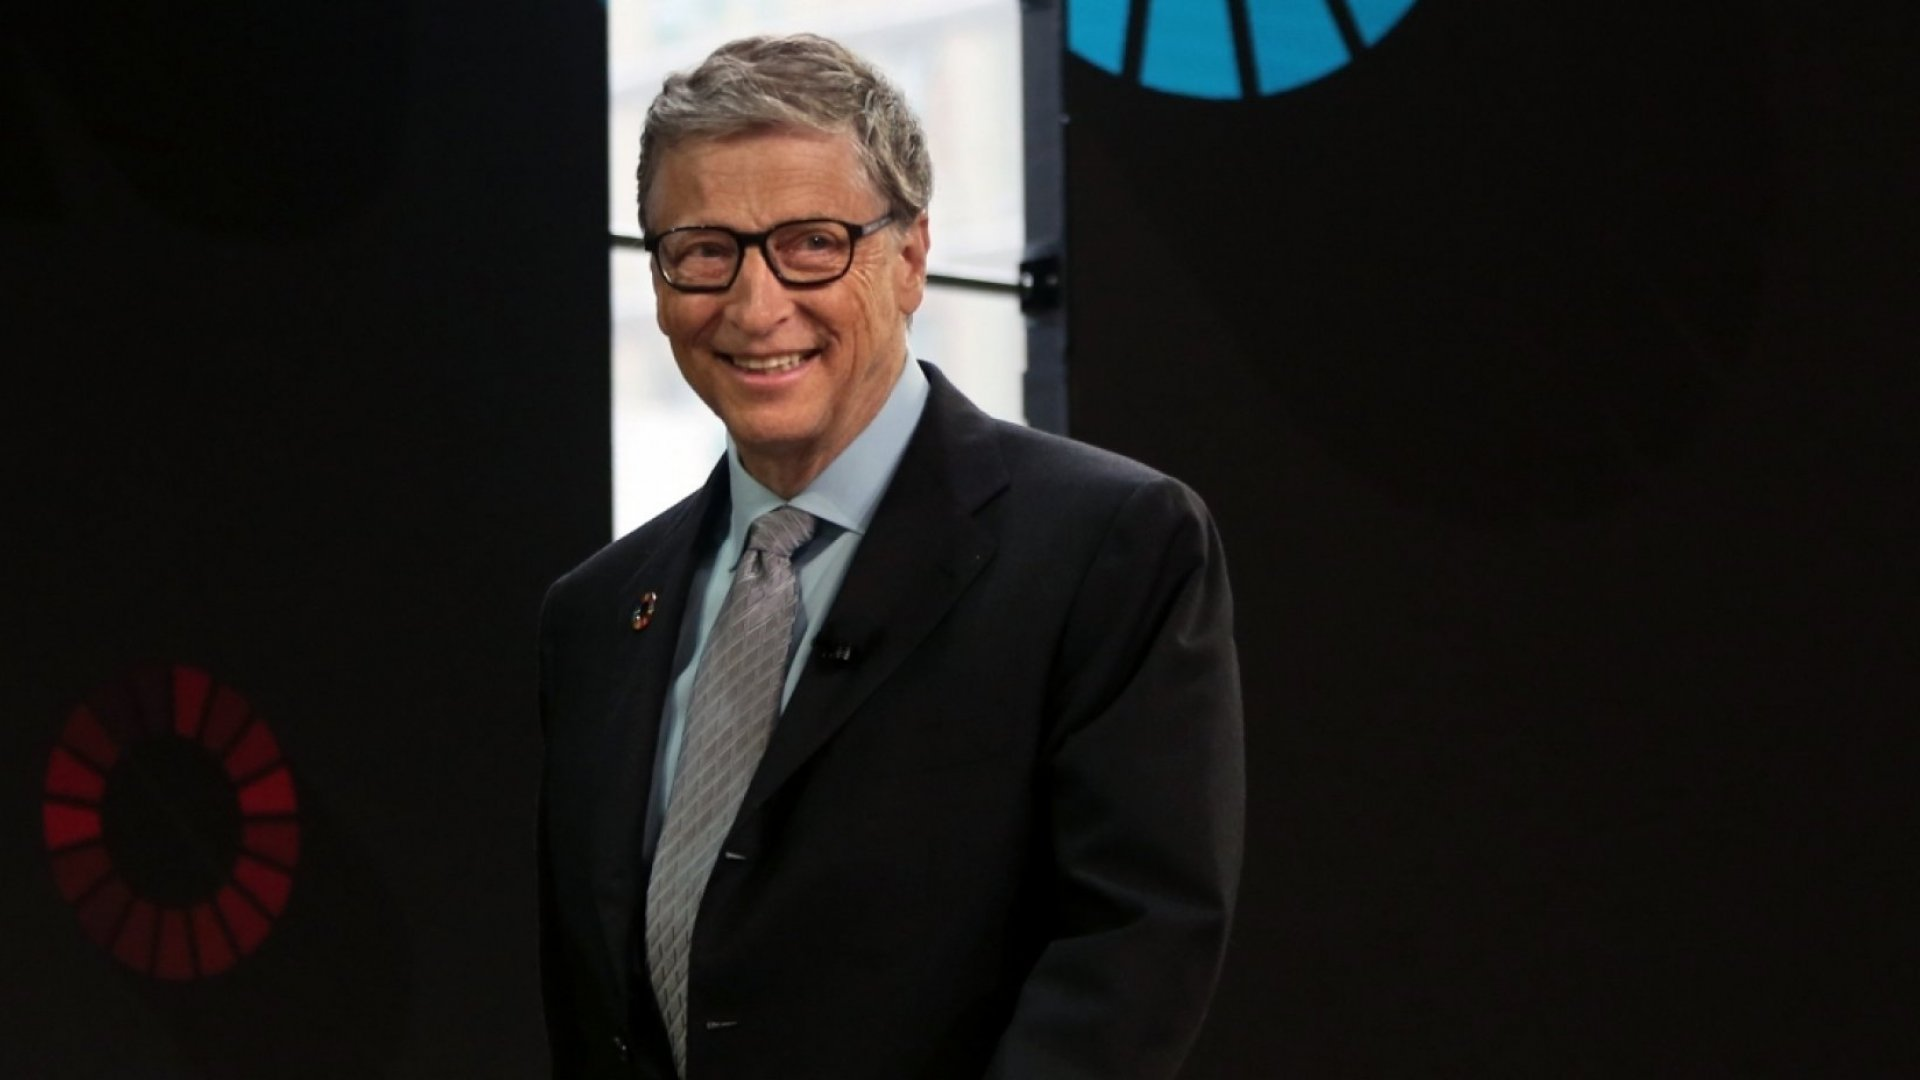 Bill Gates and Other Billionaires Say This 1 Habit is the Secret to Their Success